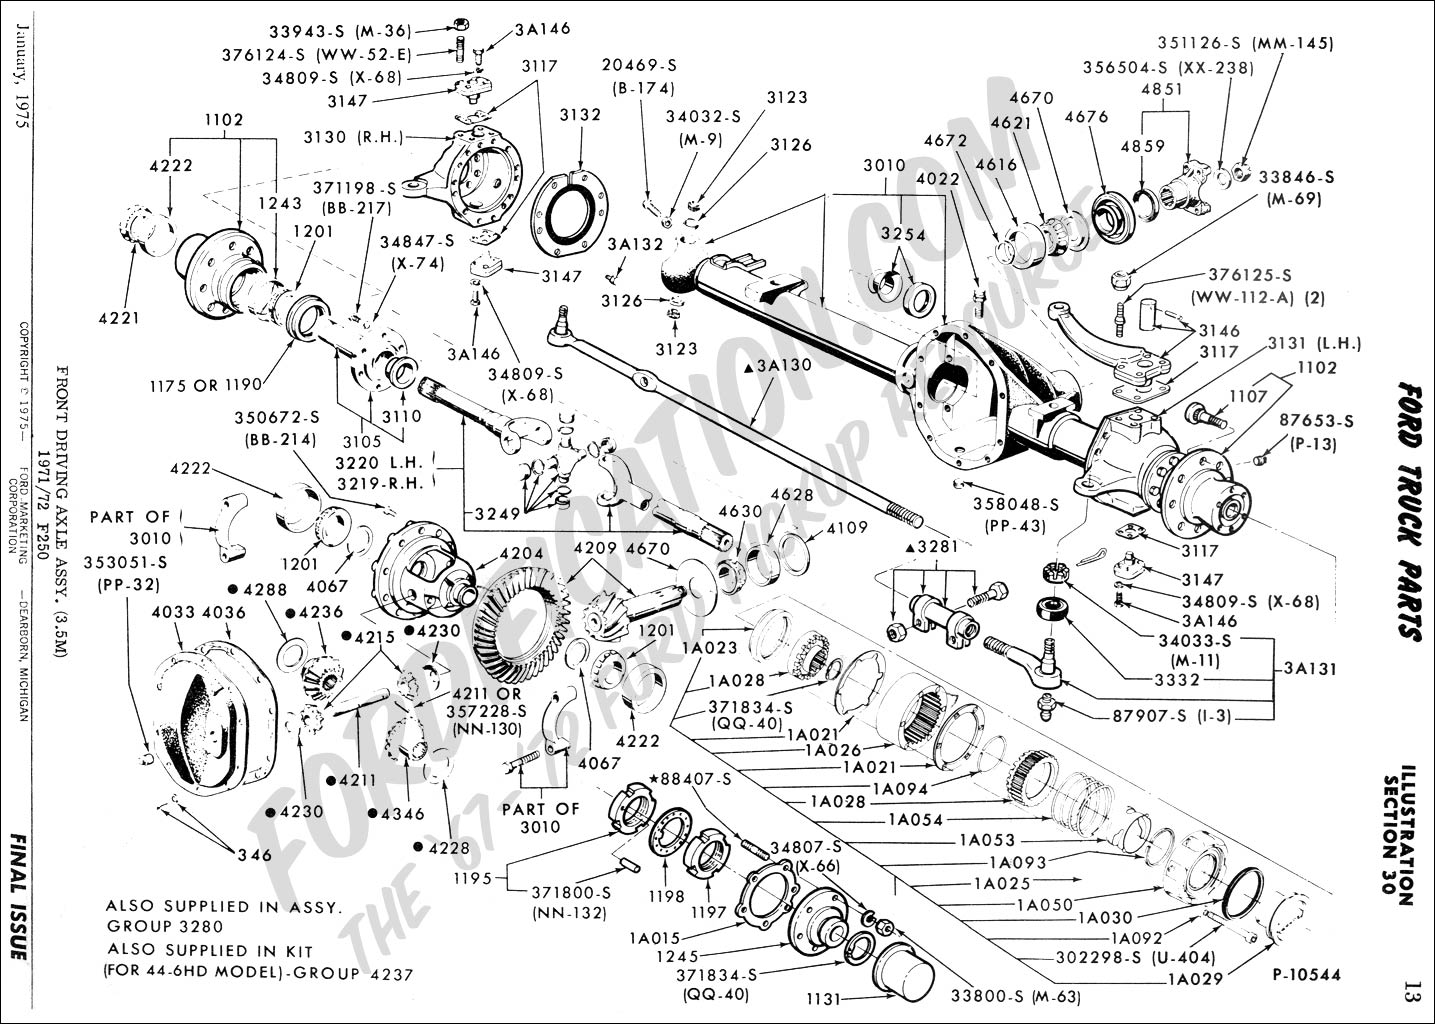 2005 ford f350 diesel 4x4 front axle parts diagram